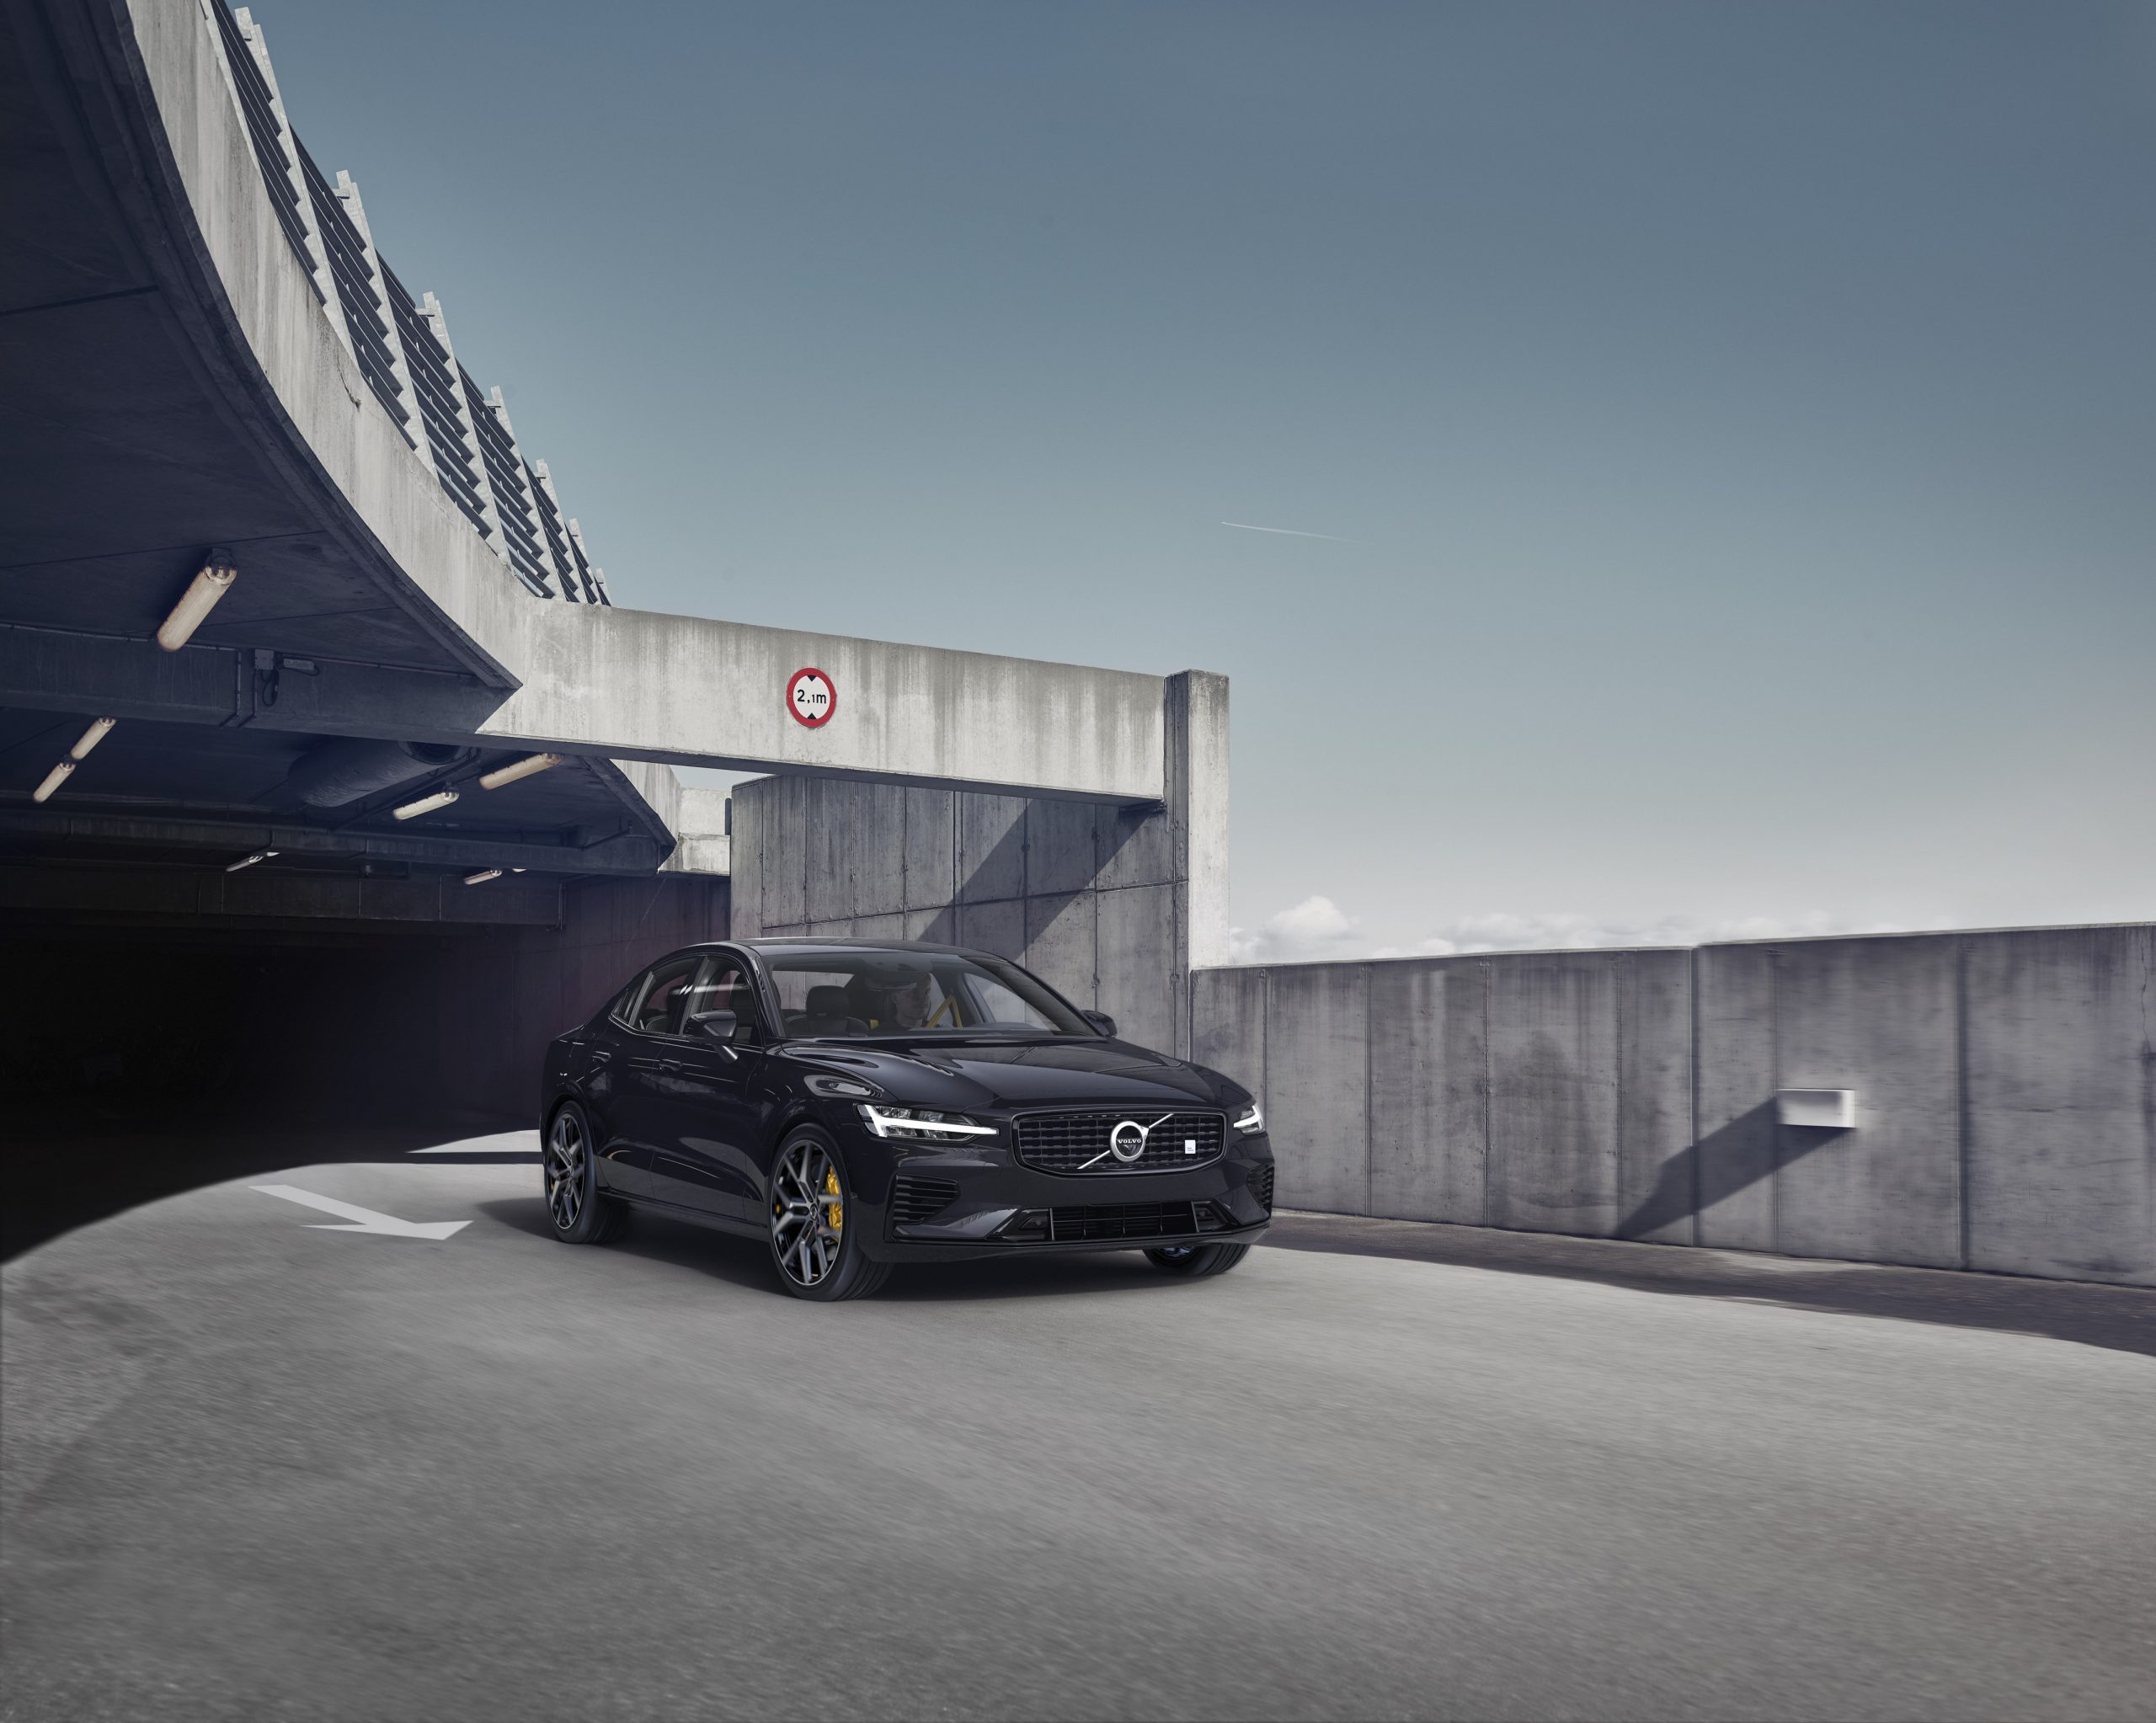 a black 2021 Volvo S60 luxury car pulling out of an upscale urban parking garage